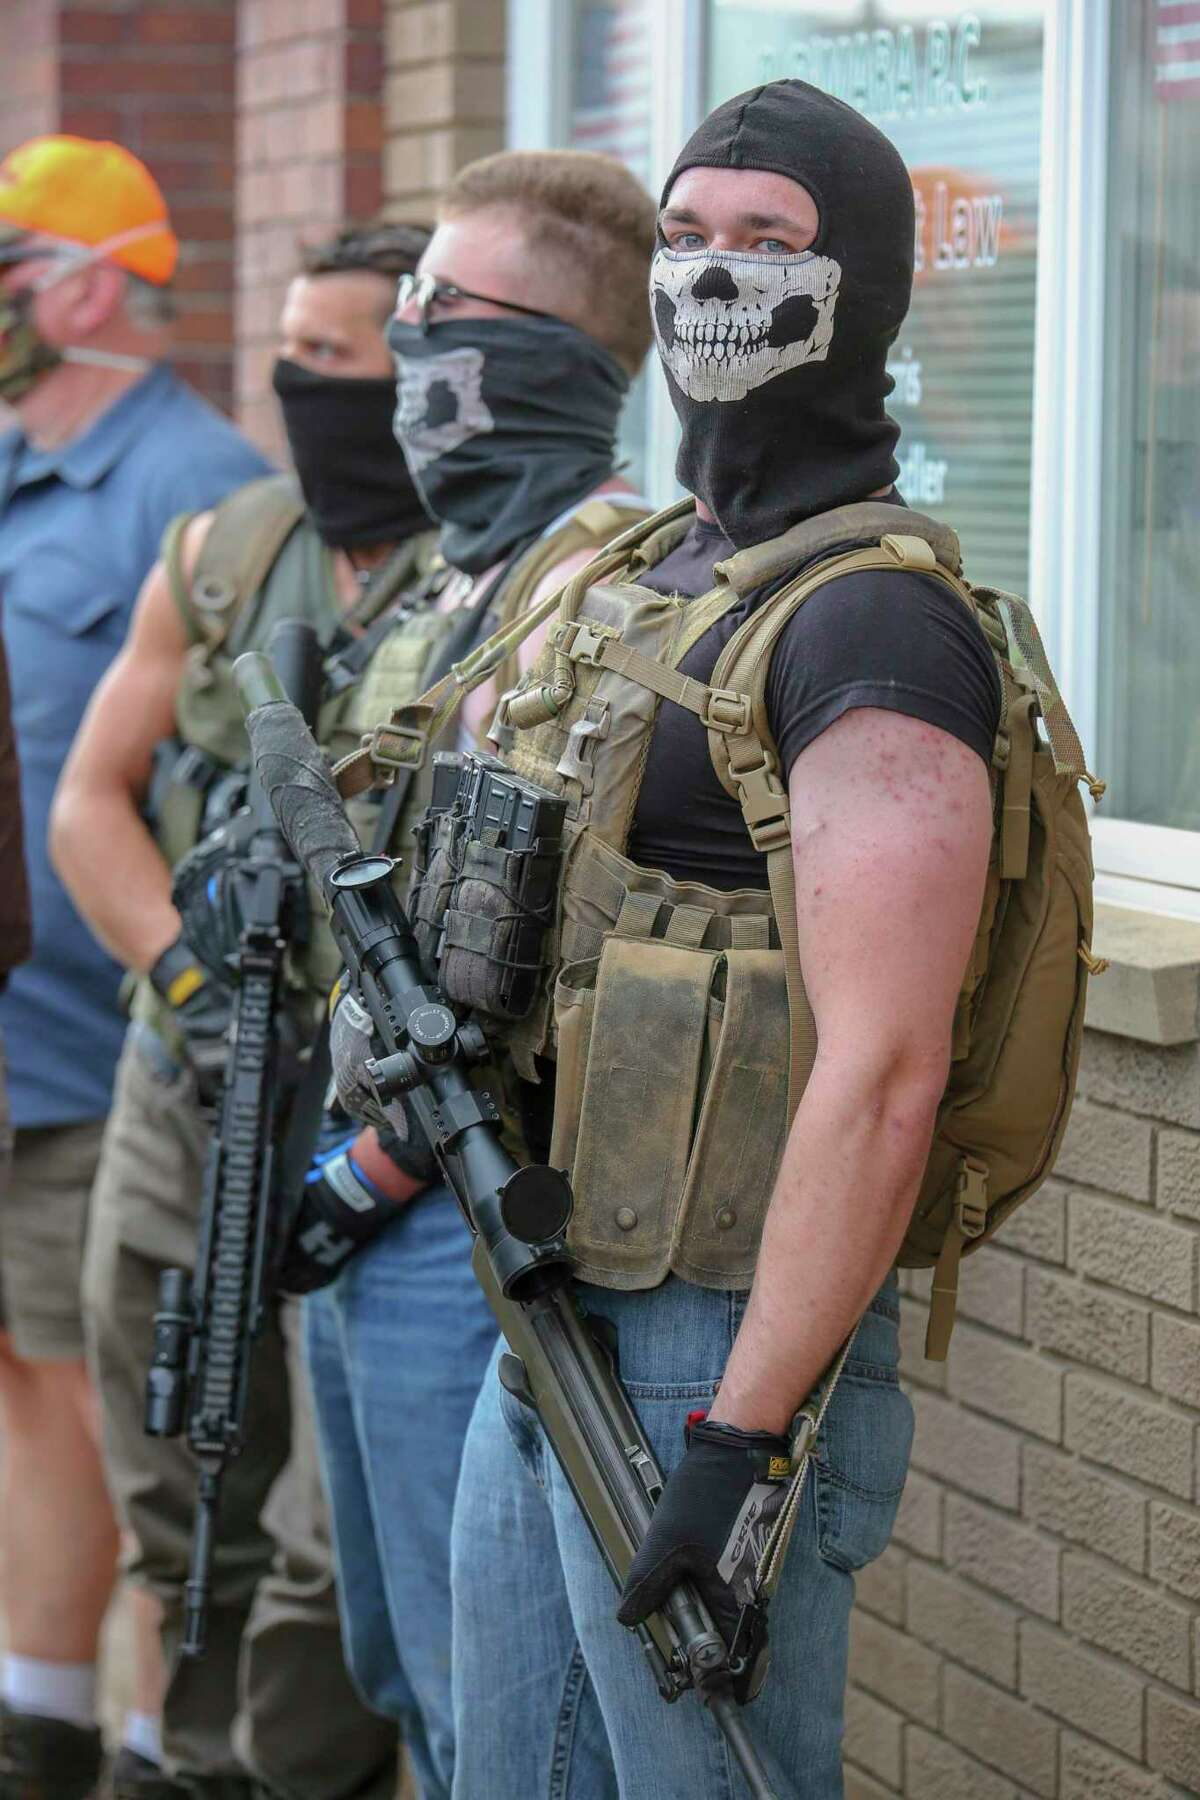 The Base members Thomas Denton, Tristan Webb and Justen Watkins stand with firearms across from the Huron County Building during a Black Lives Matter demonstration in Bad Axe last year. (Eric Young/Tribune File Photo)